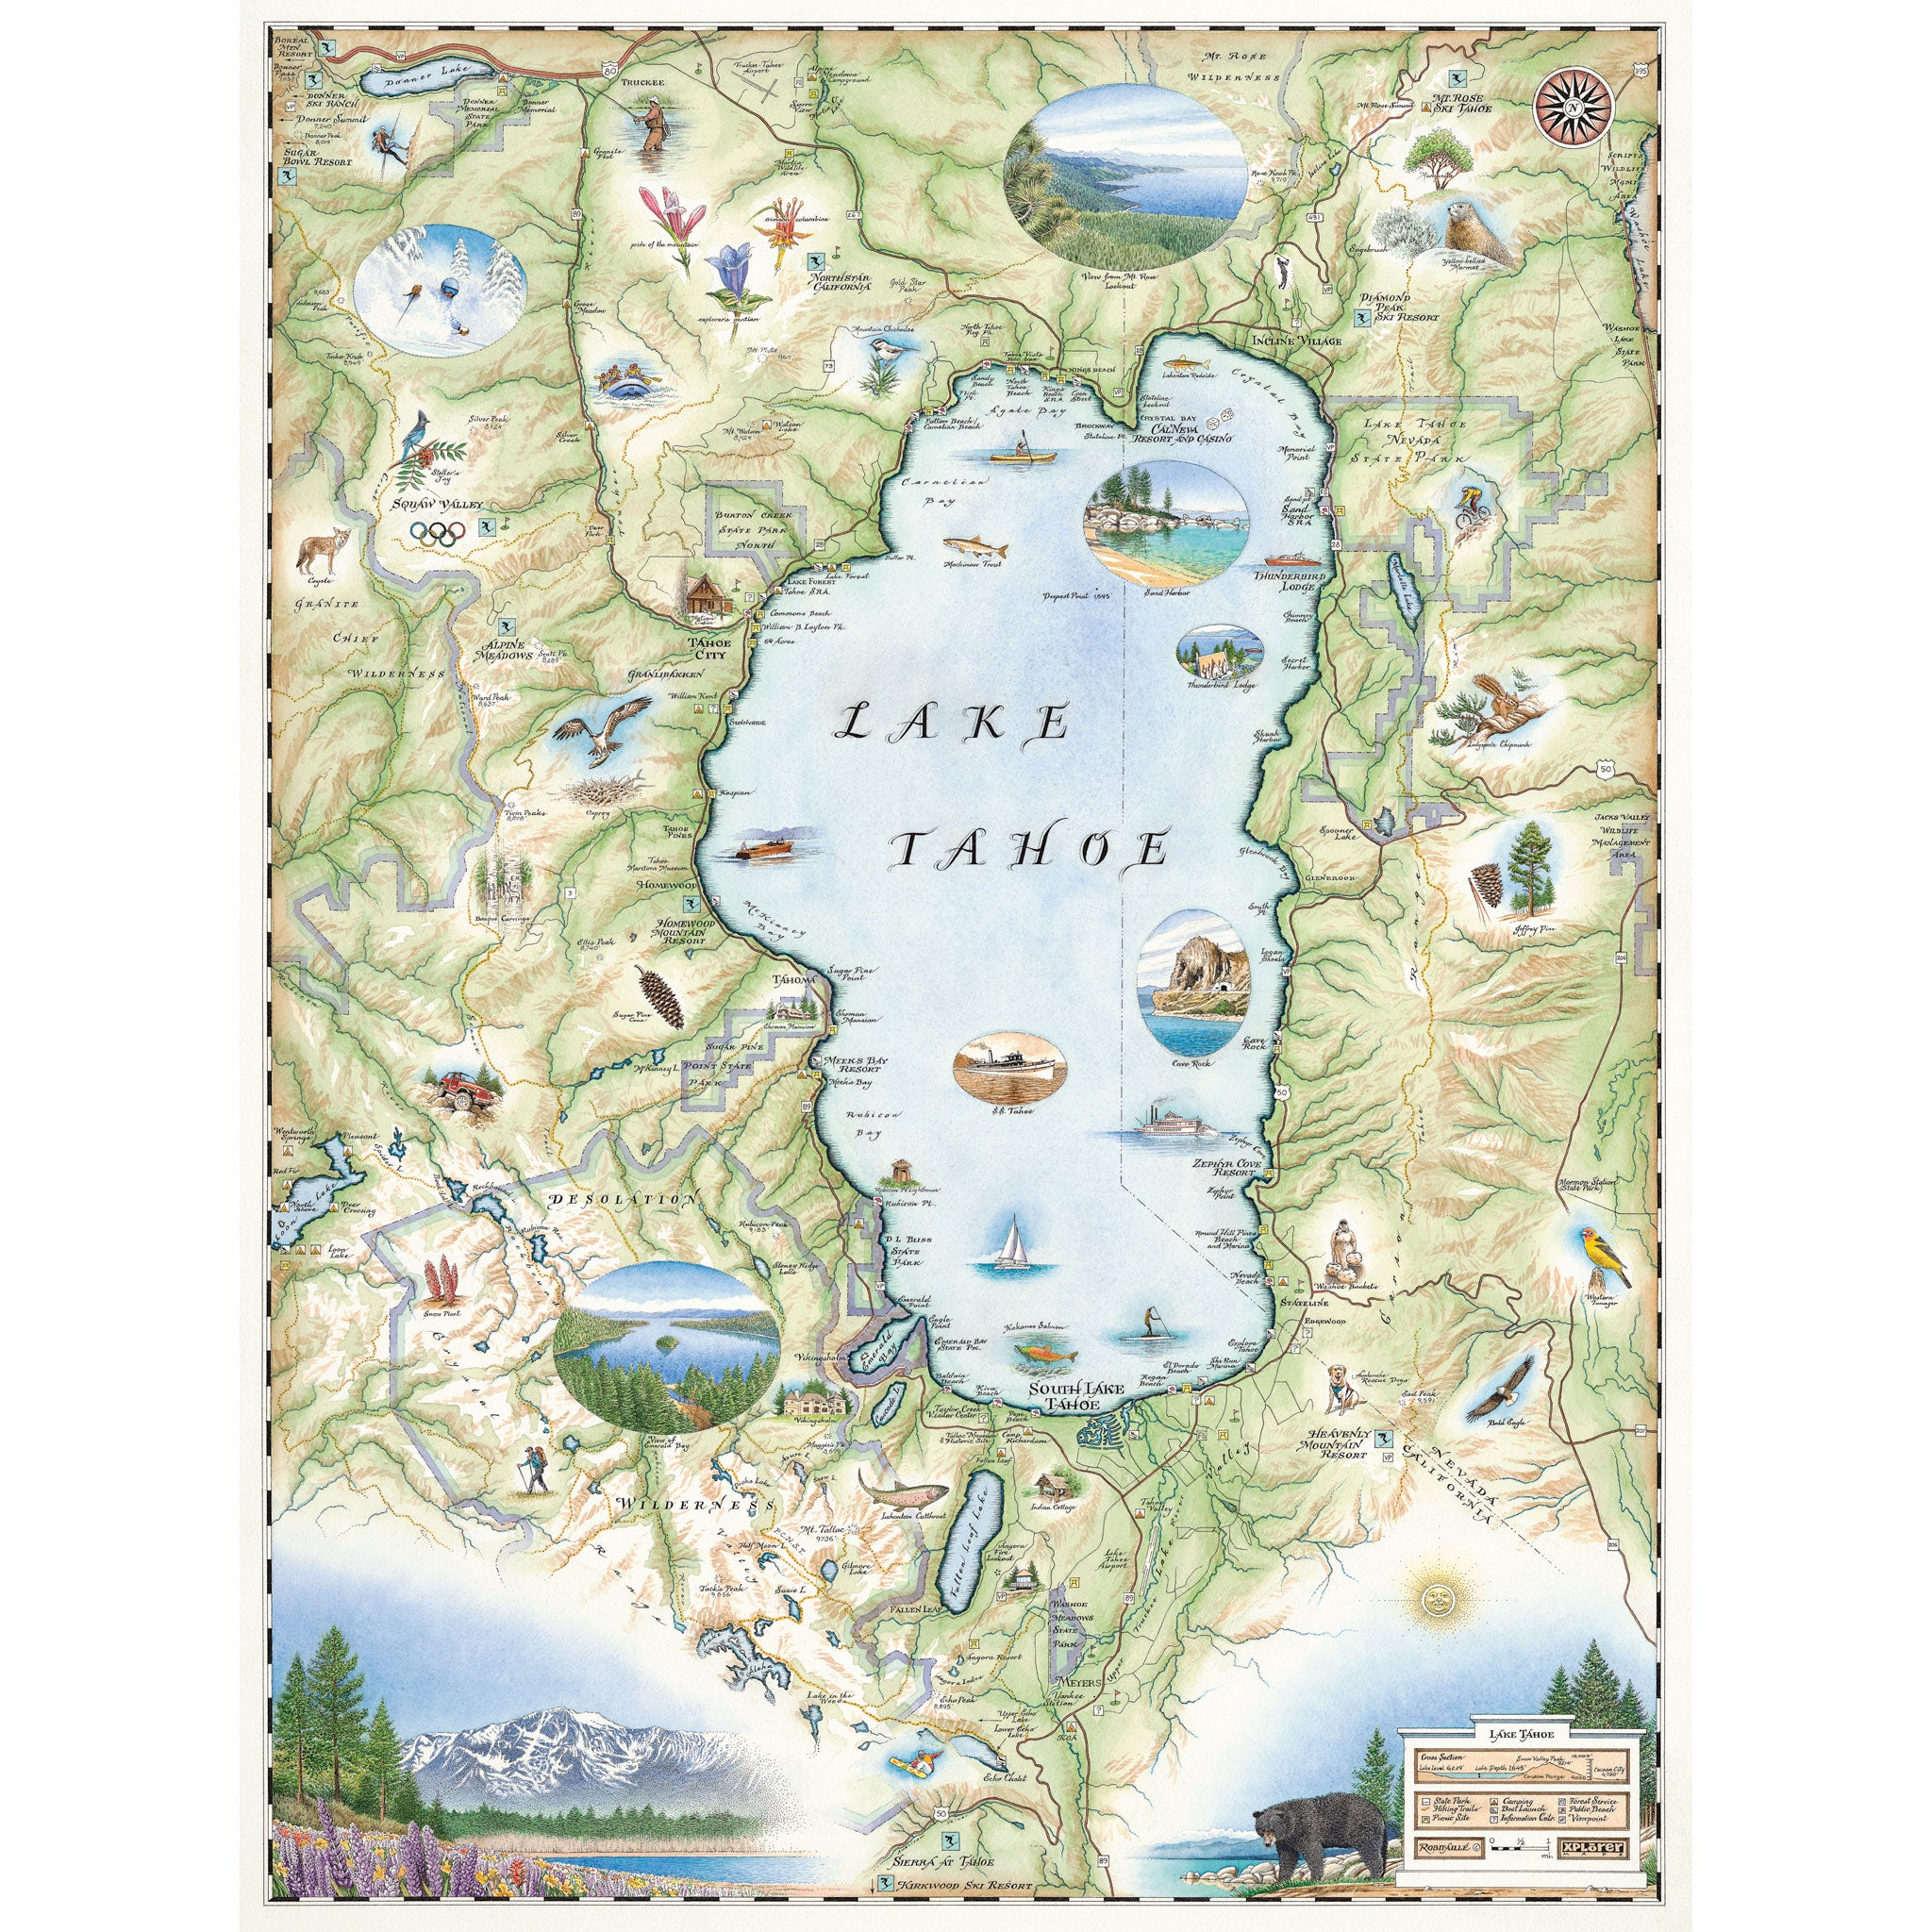 lake tahoe on a map Lake Tahoe Map Art Prints Poster Art Wall Art Xplorer Maps lake tahoe on a map